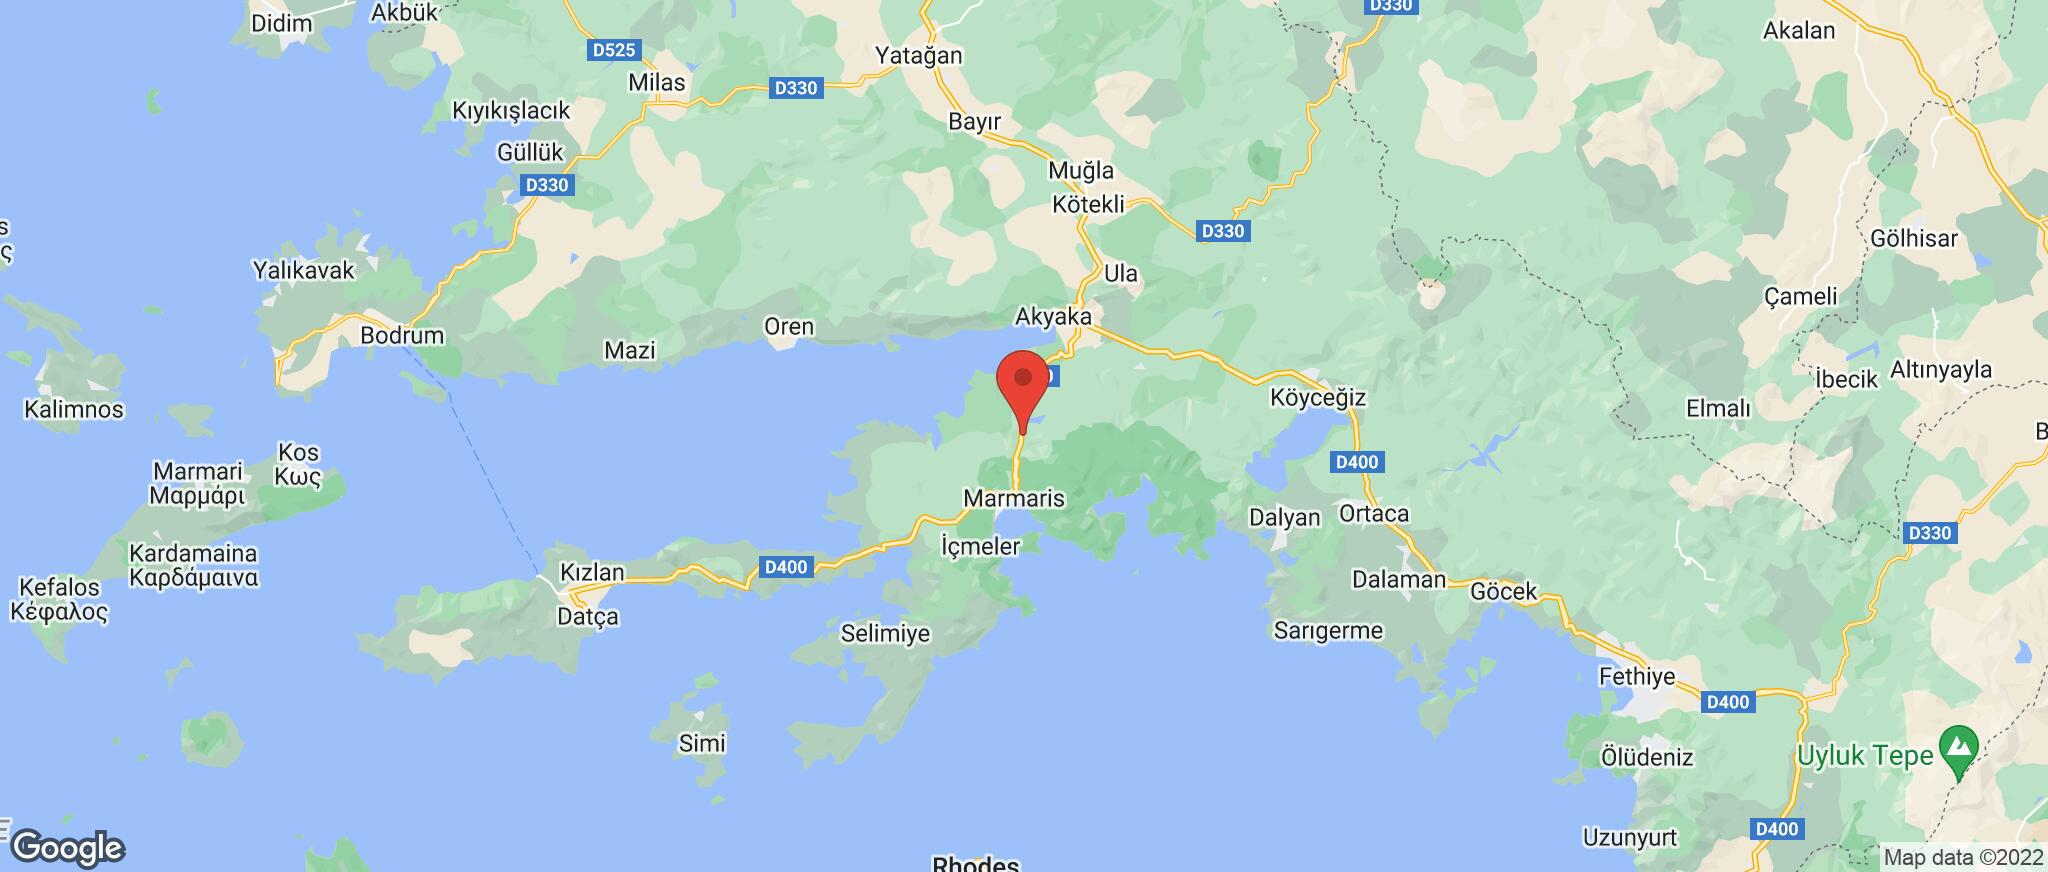 Map showing the location of Marmaris